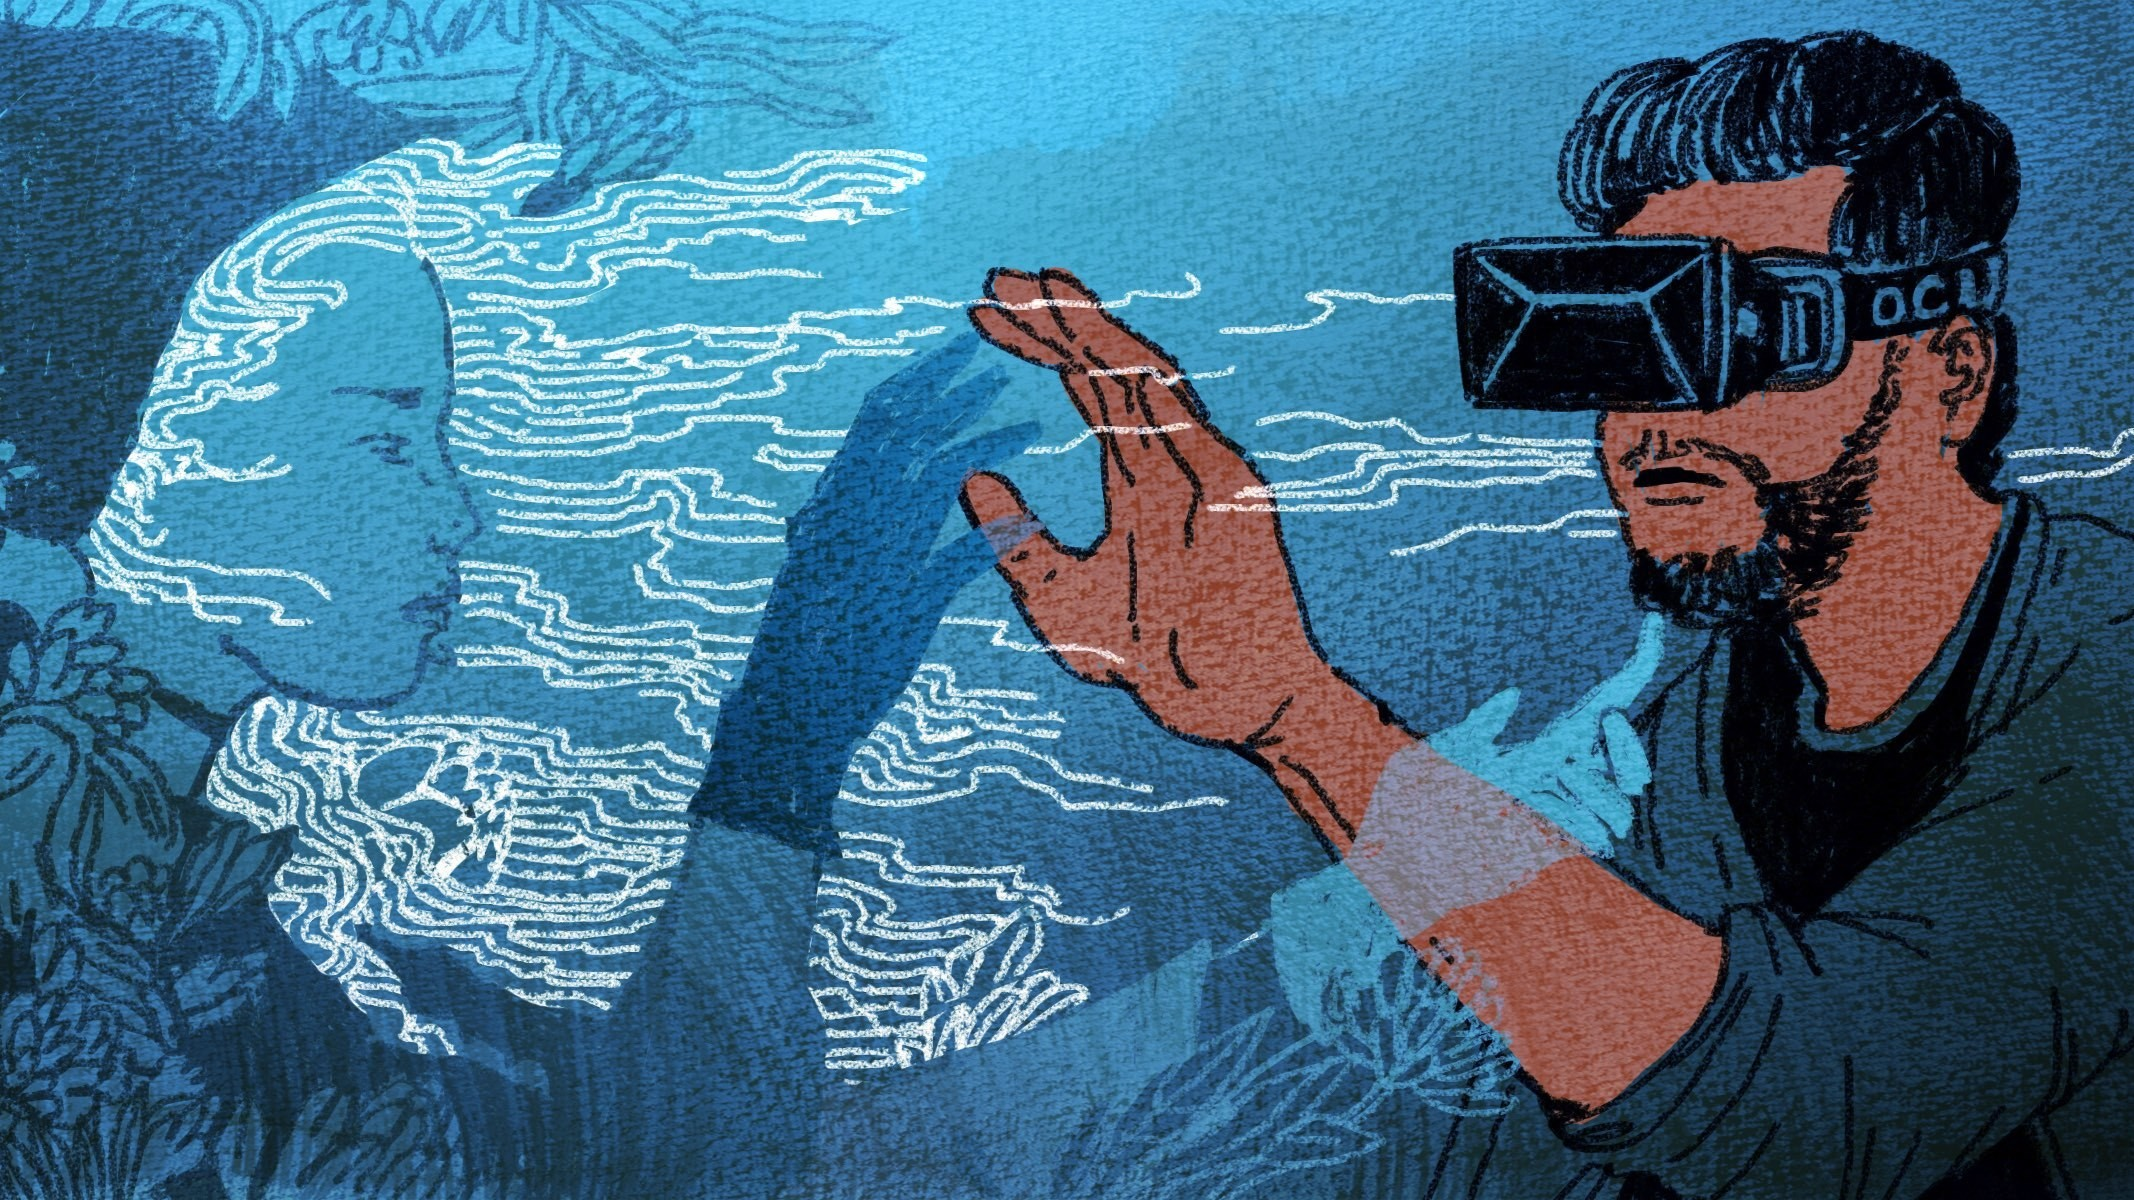 Real Life Is Not Enough: On Choosing Virtual Reality over the Physical World